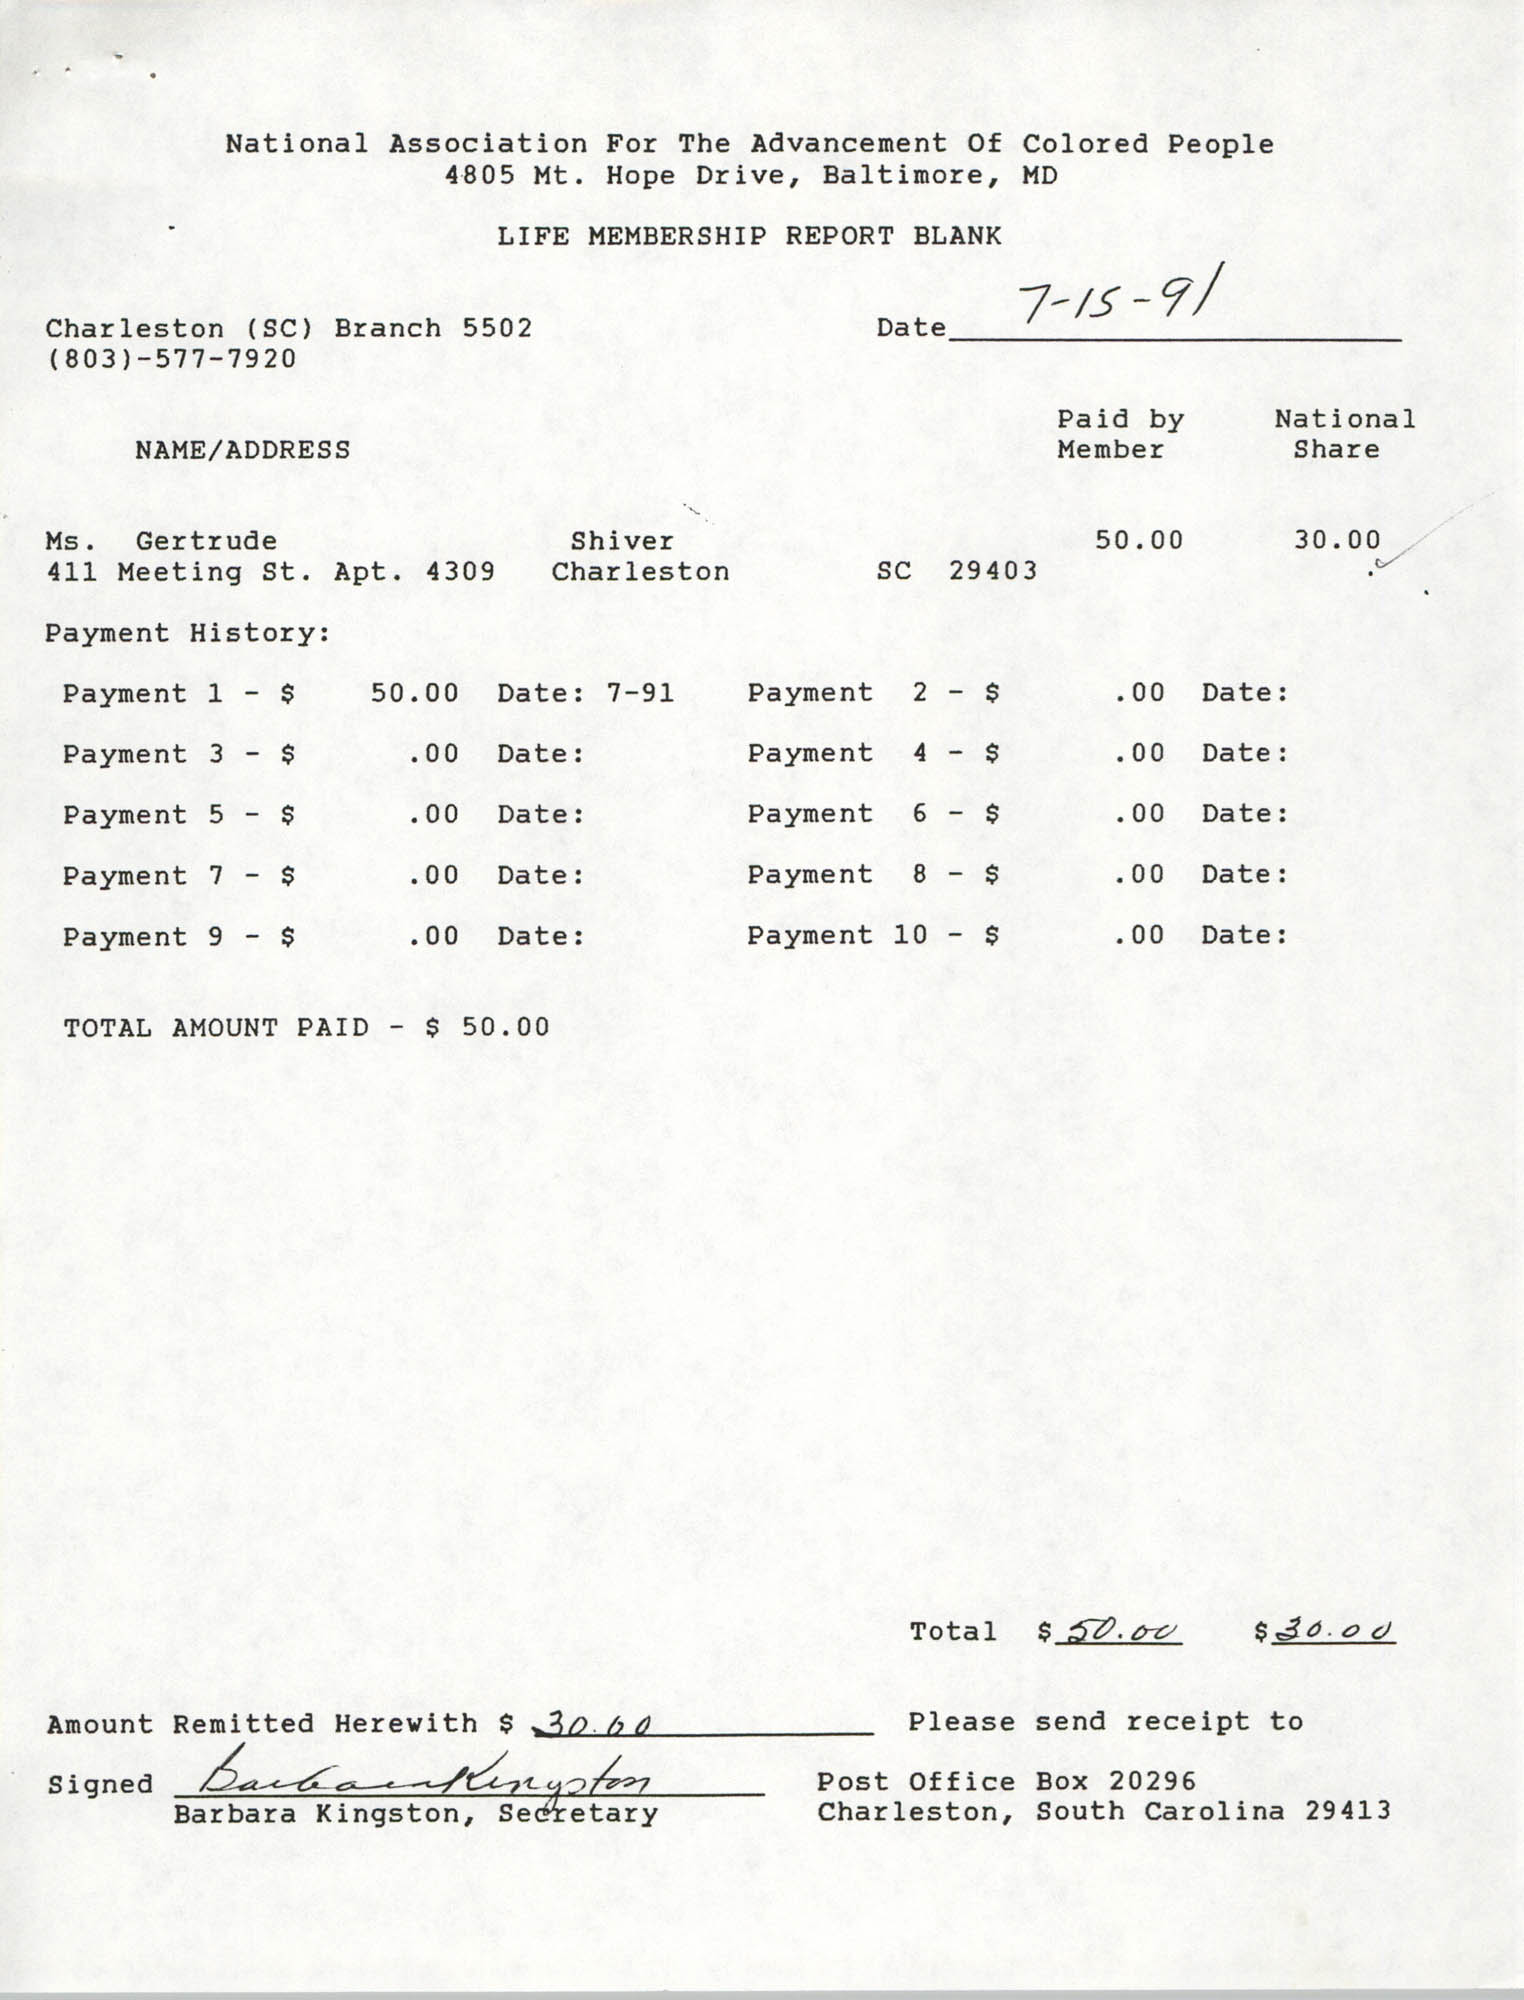 Life Membership Report Blank, Charleston Branch of the NAACP, Barbara Kingston, July 15, 1991